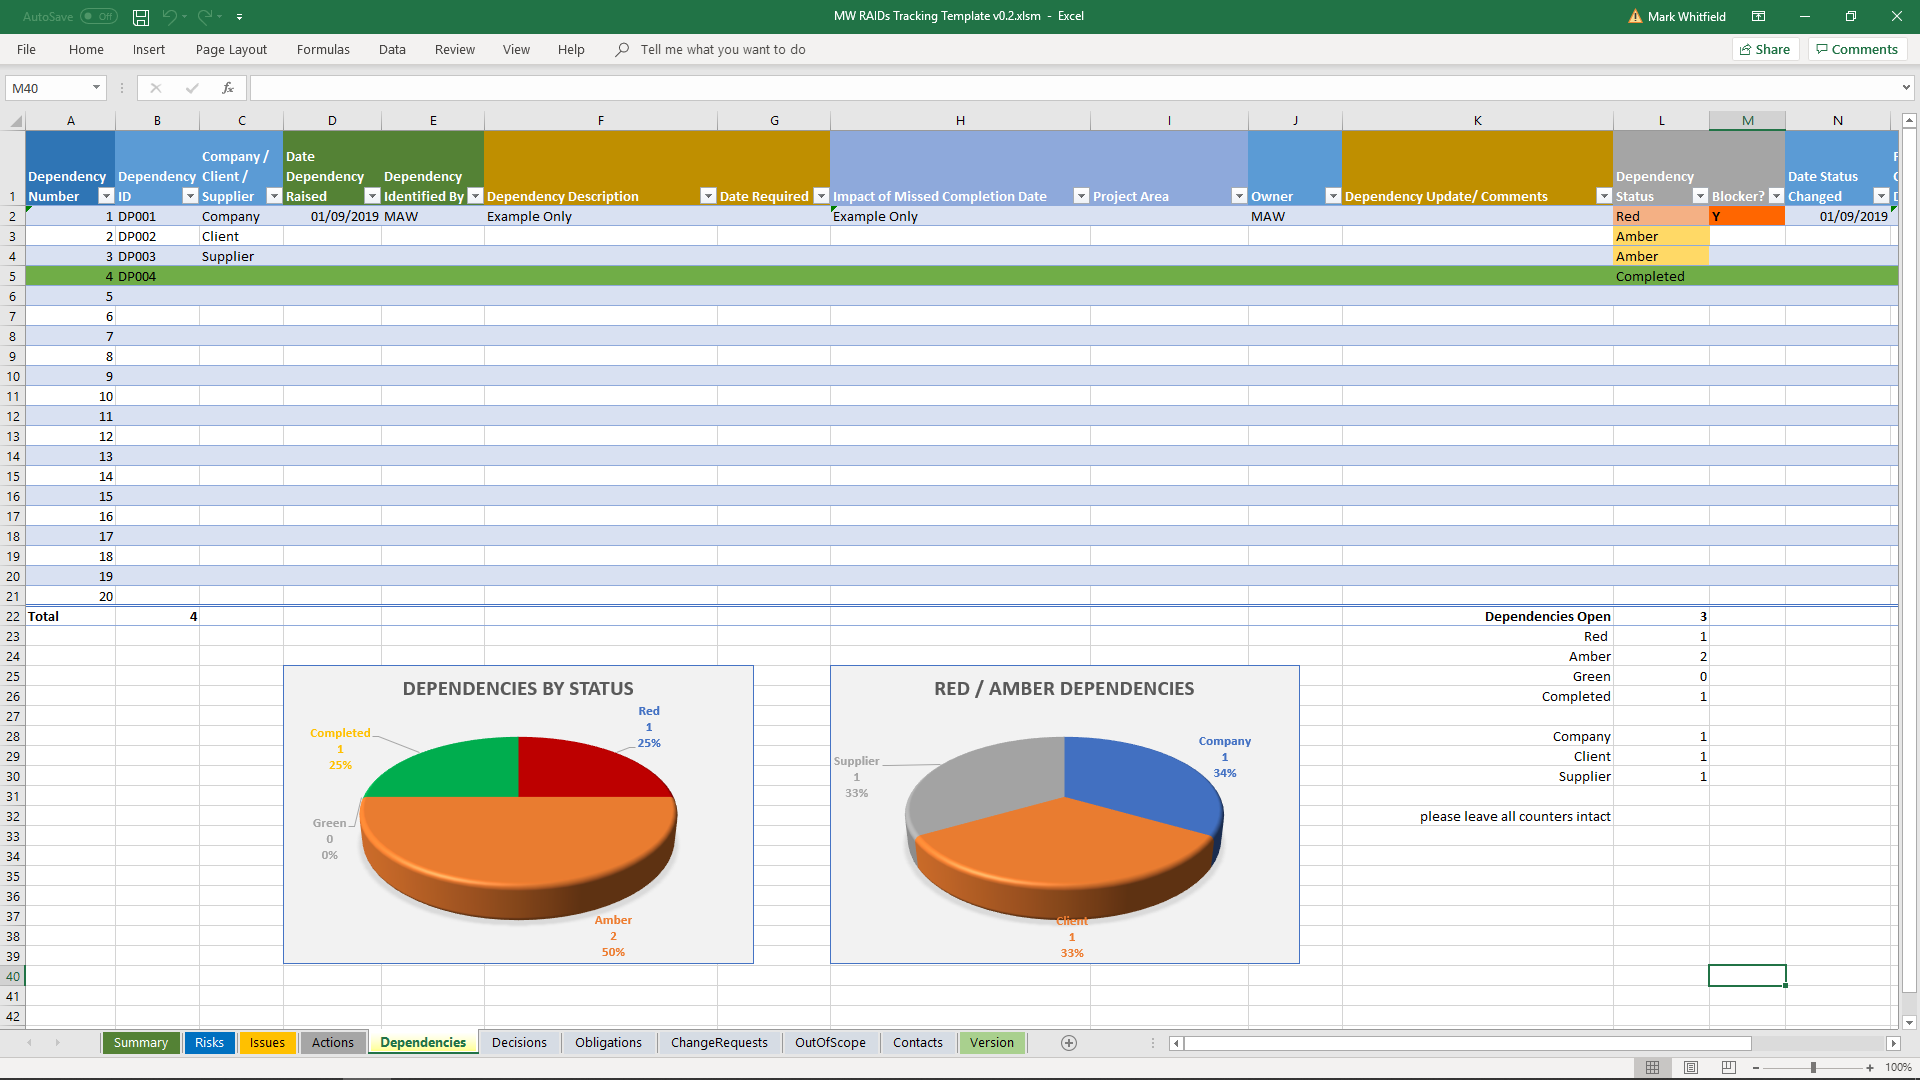 Issue Log Template Excel from markwhitfieldcom.files.wordpress.com